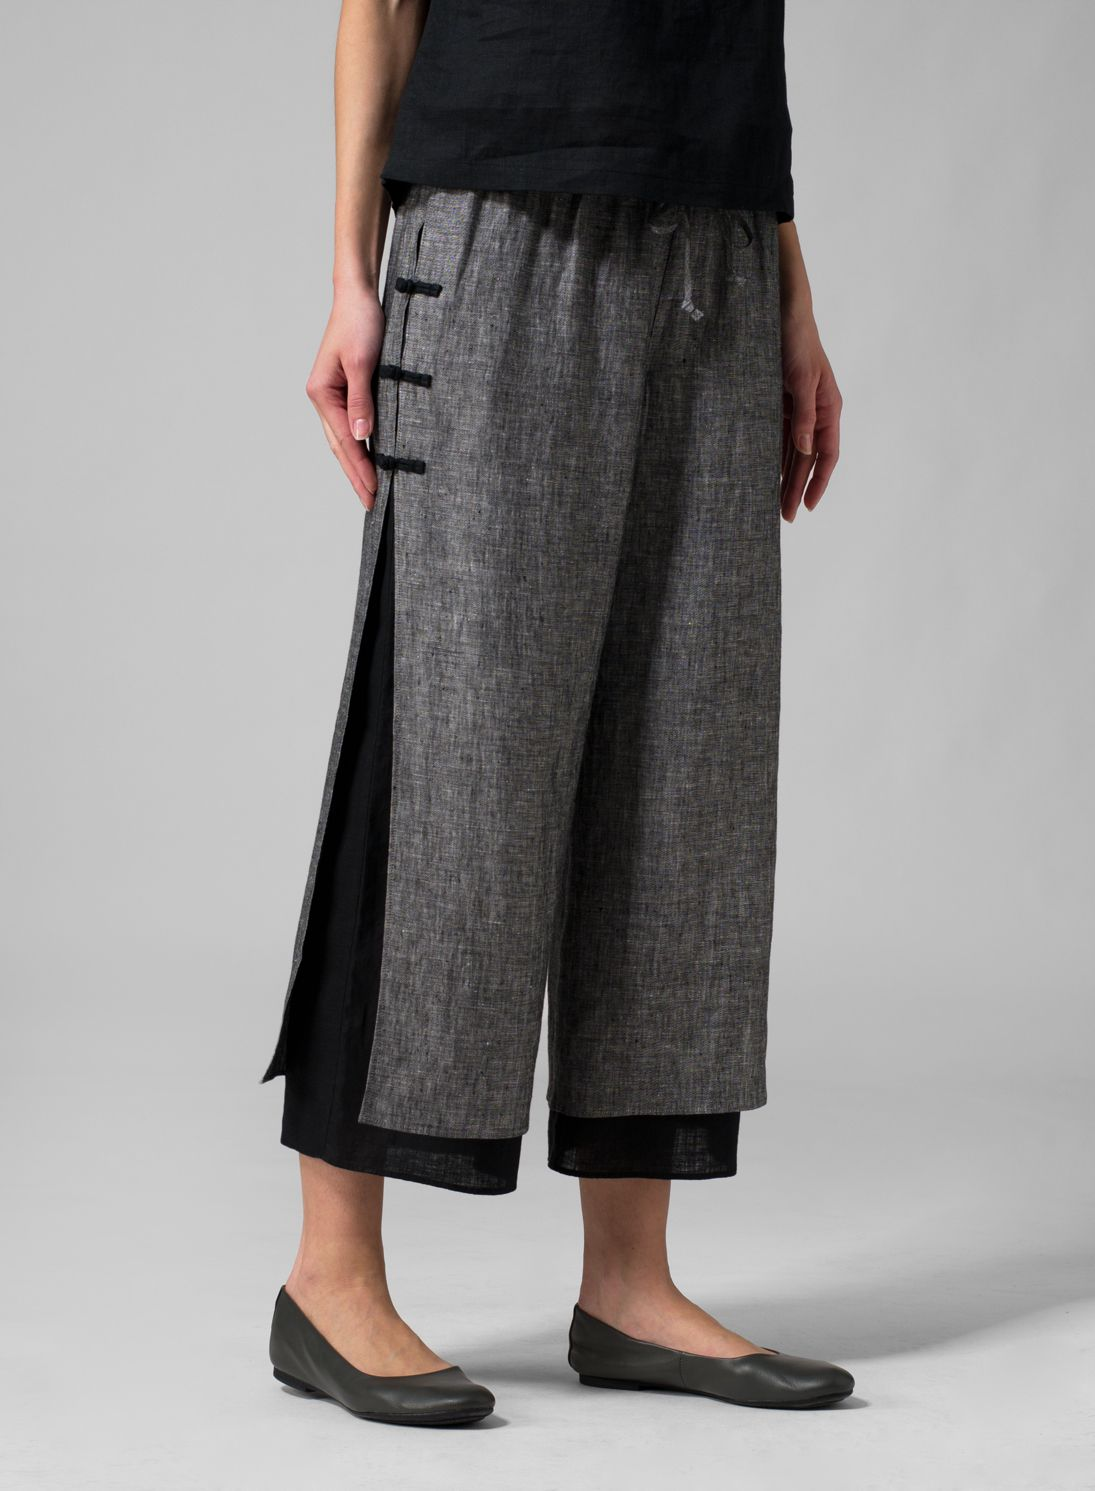 570d0dbc29c13 MISSY Clothing - Linen Double-Layer Pants